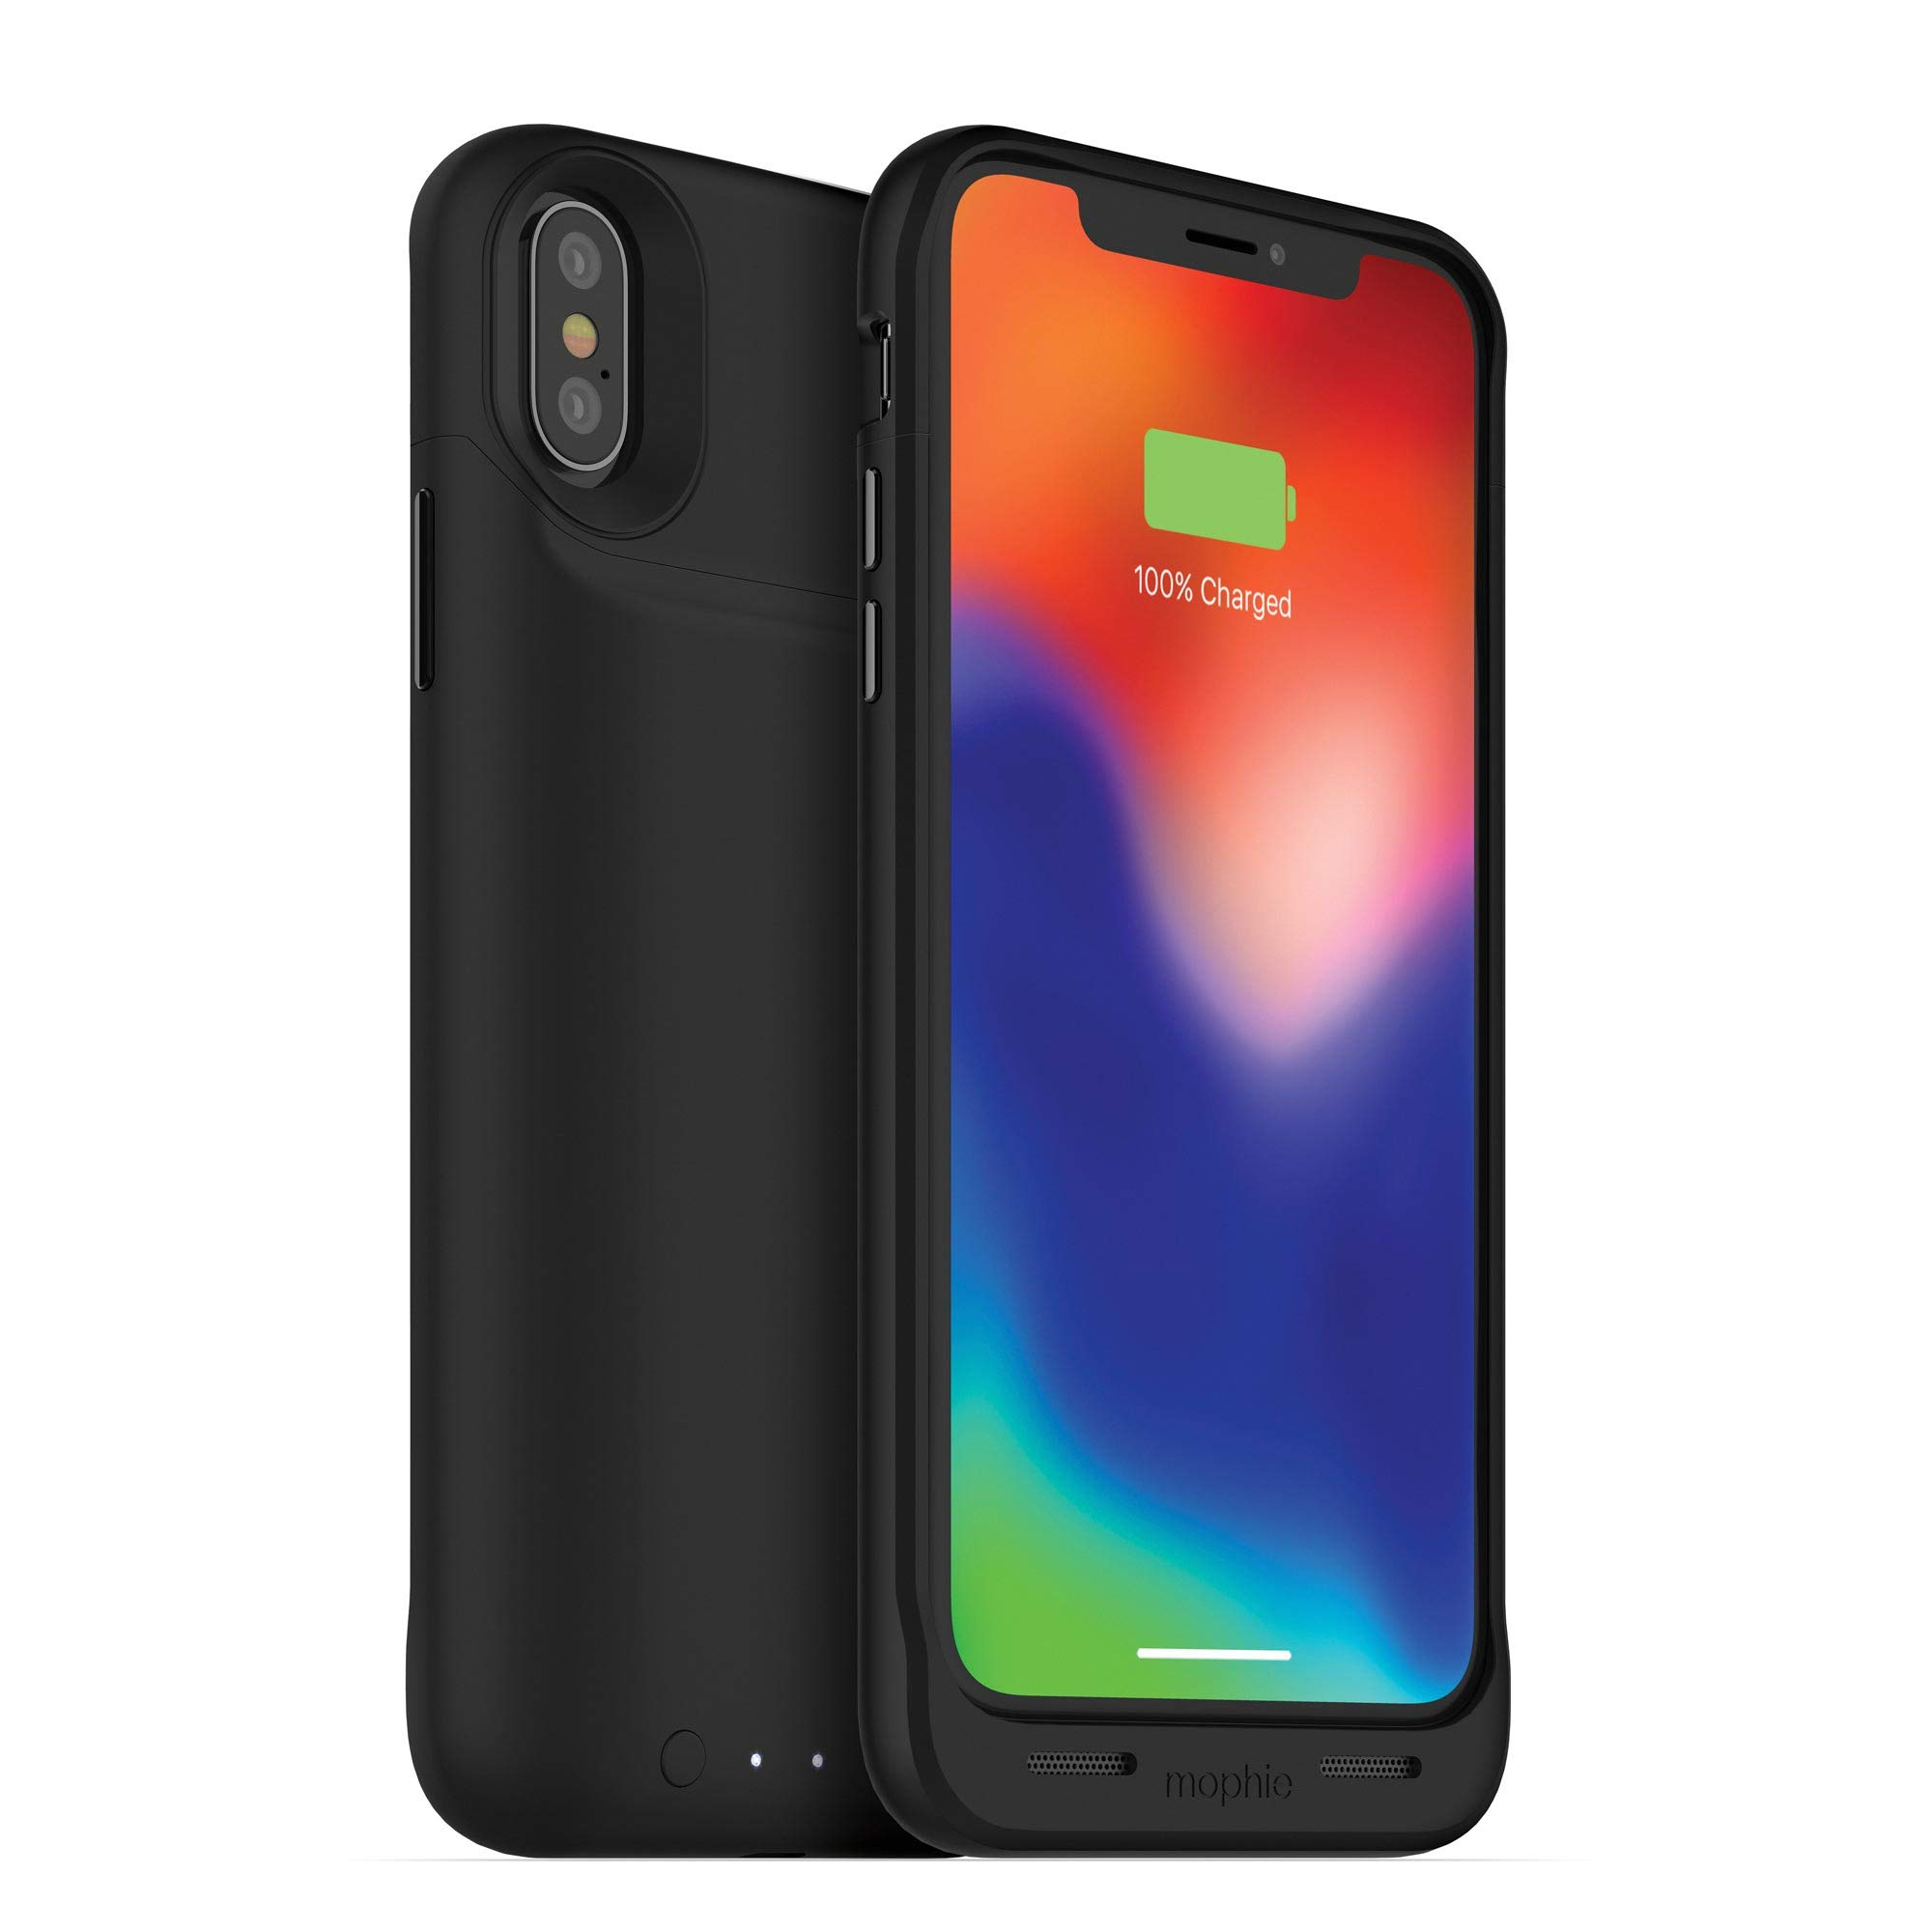 mophie Juice Pack Air - Wireless Charging - Protective Battery Case - Made For Apple iPhone X - Black by mophie